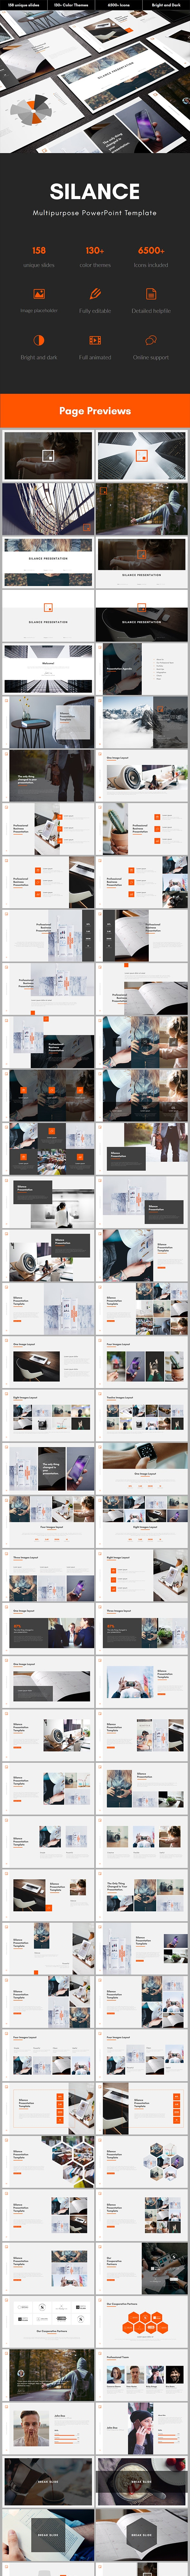 Silance Multipurpose PowerPoint Template - Business PowerPoint Templates